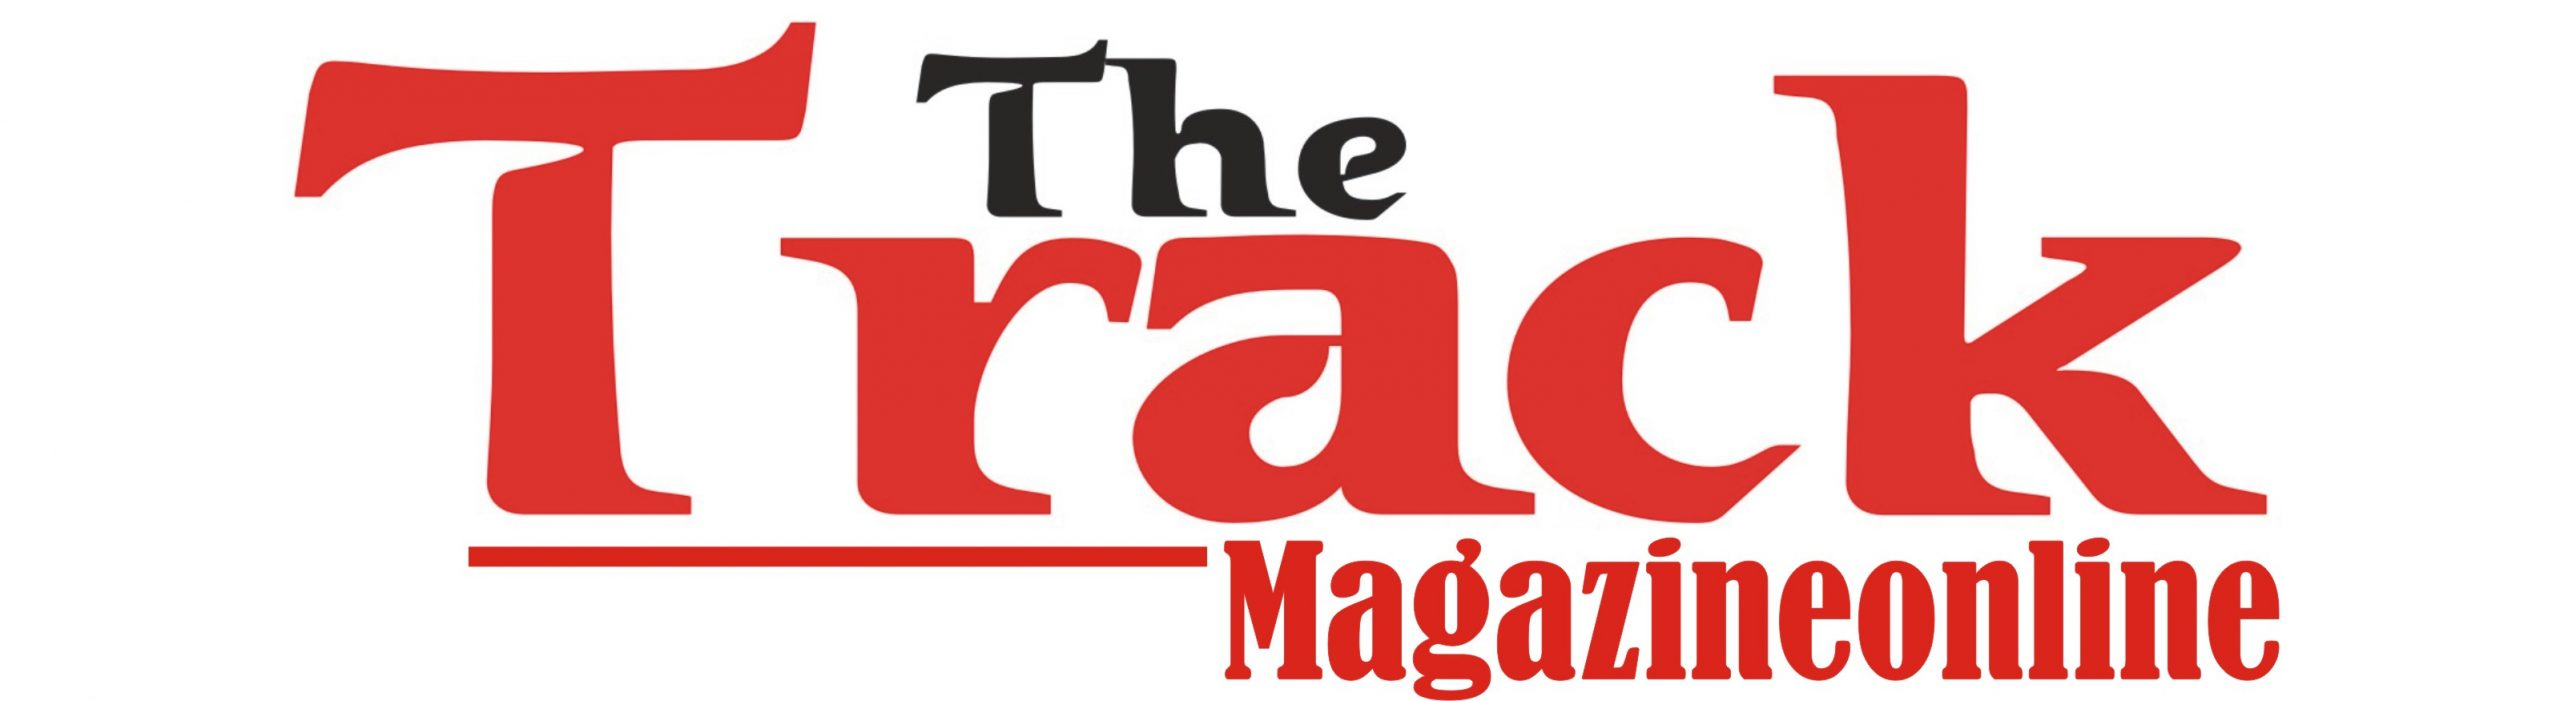 THE TRACK MAGAZINE NEWS